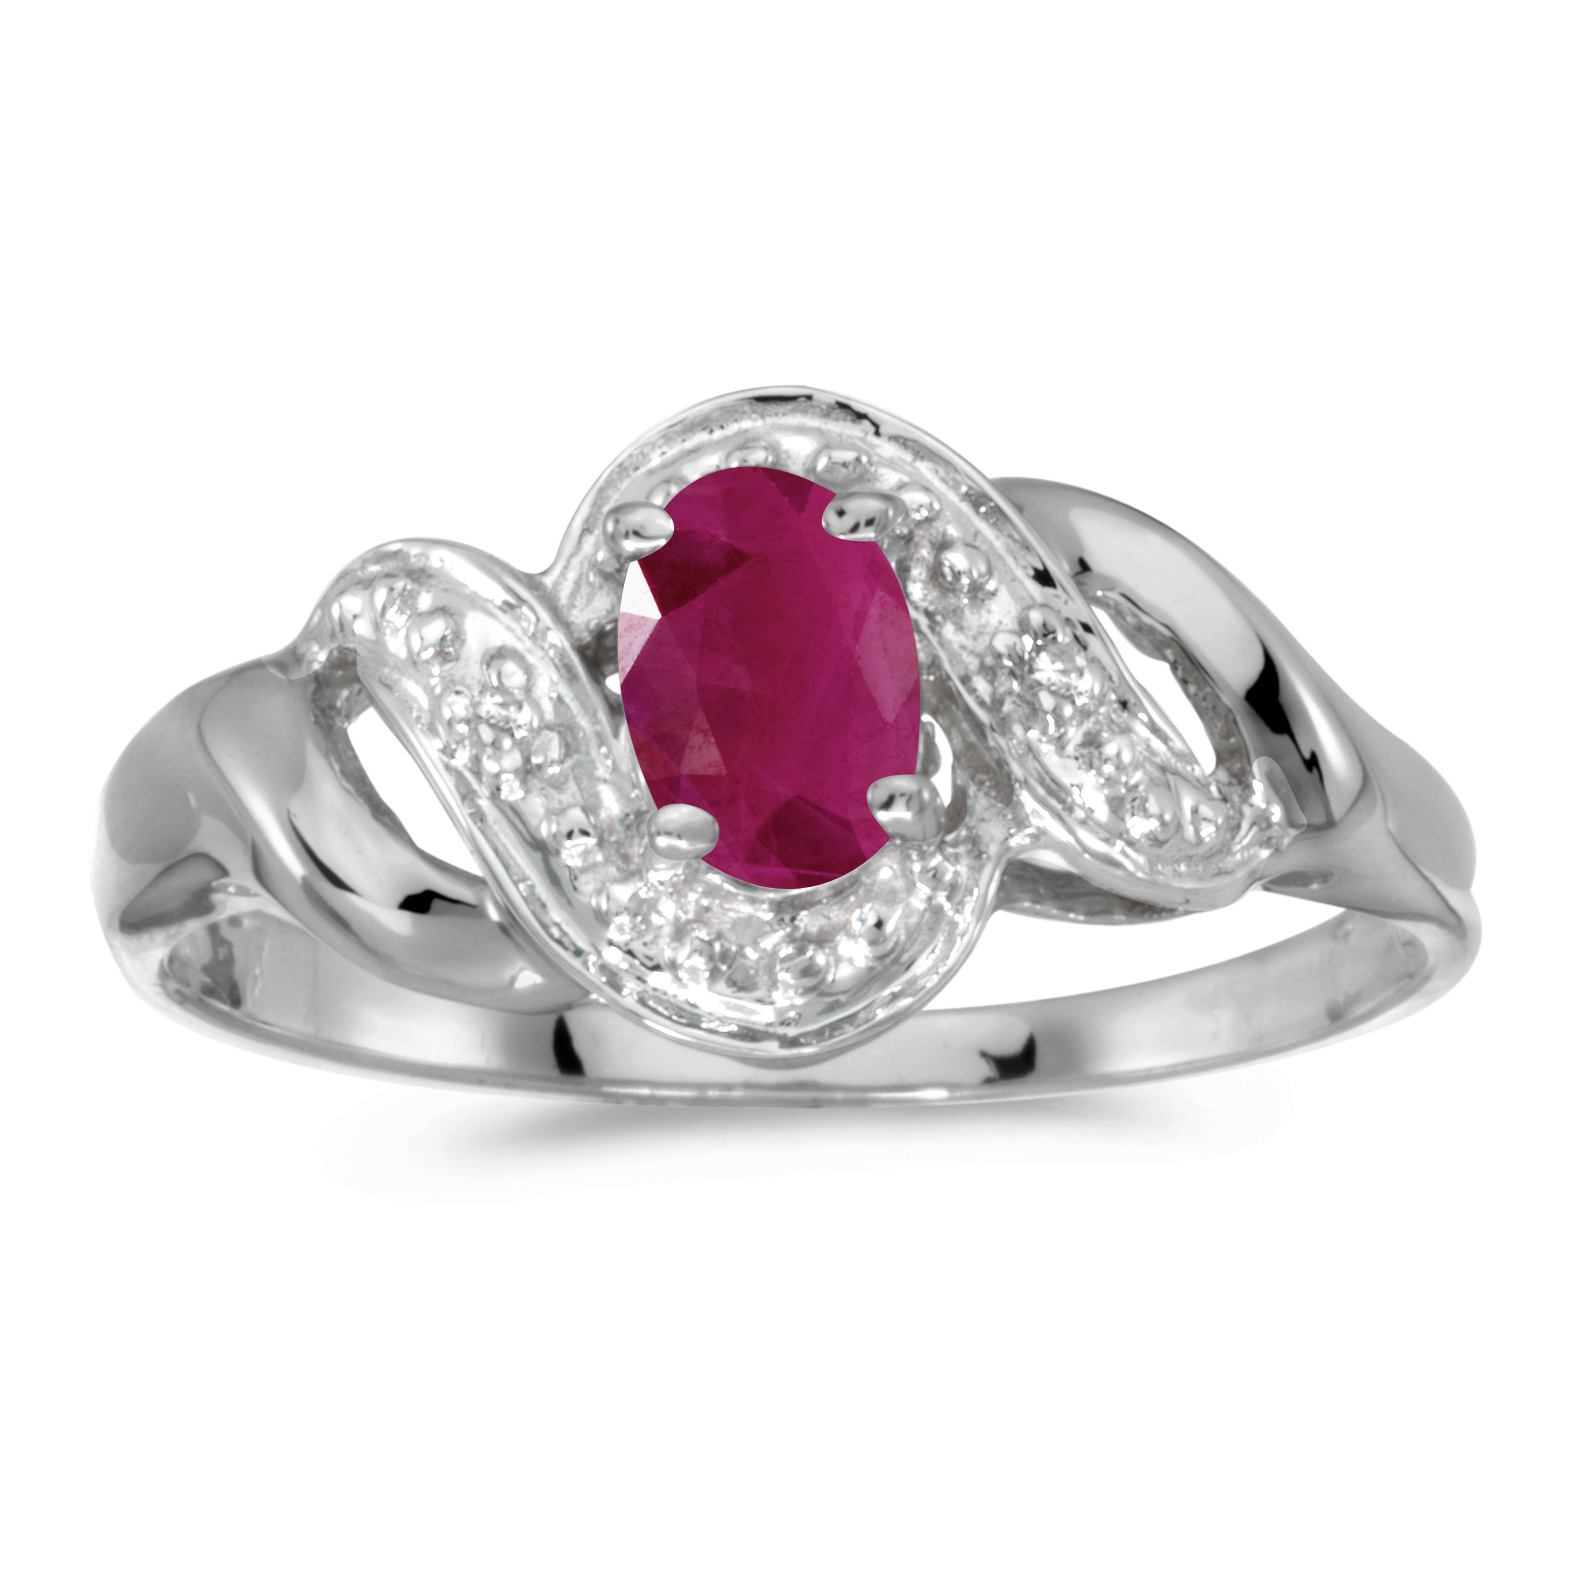 10k White Gold Oval Ruby And Diamond Swirl Ring by